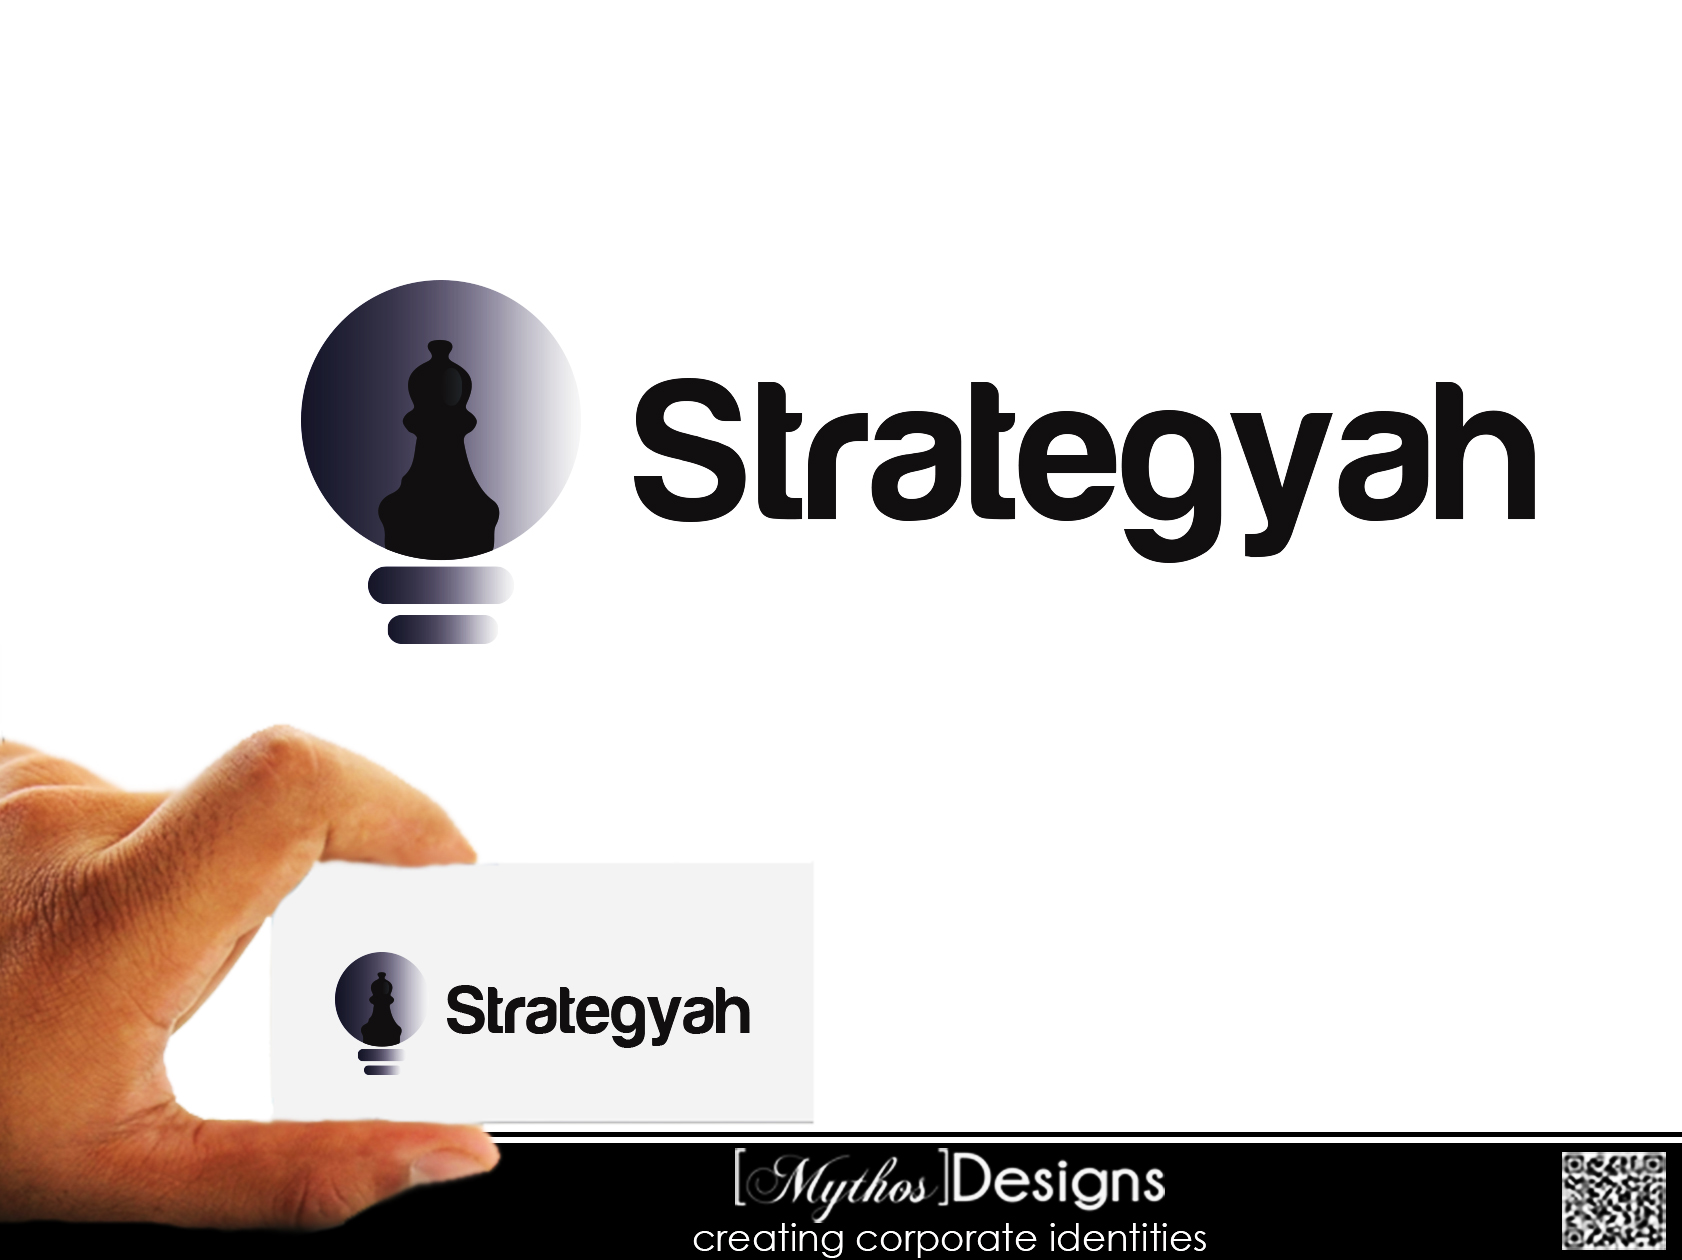 Logo Design by Mythos Designs - Entry No. 477 in the Logo Design Contest Creative Logo Design for Strategyah.